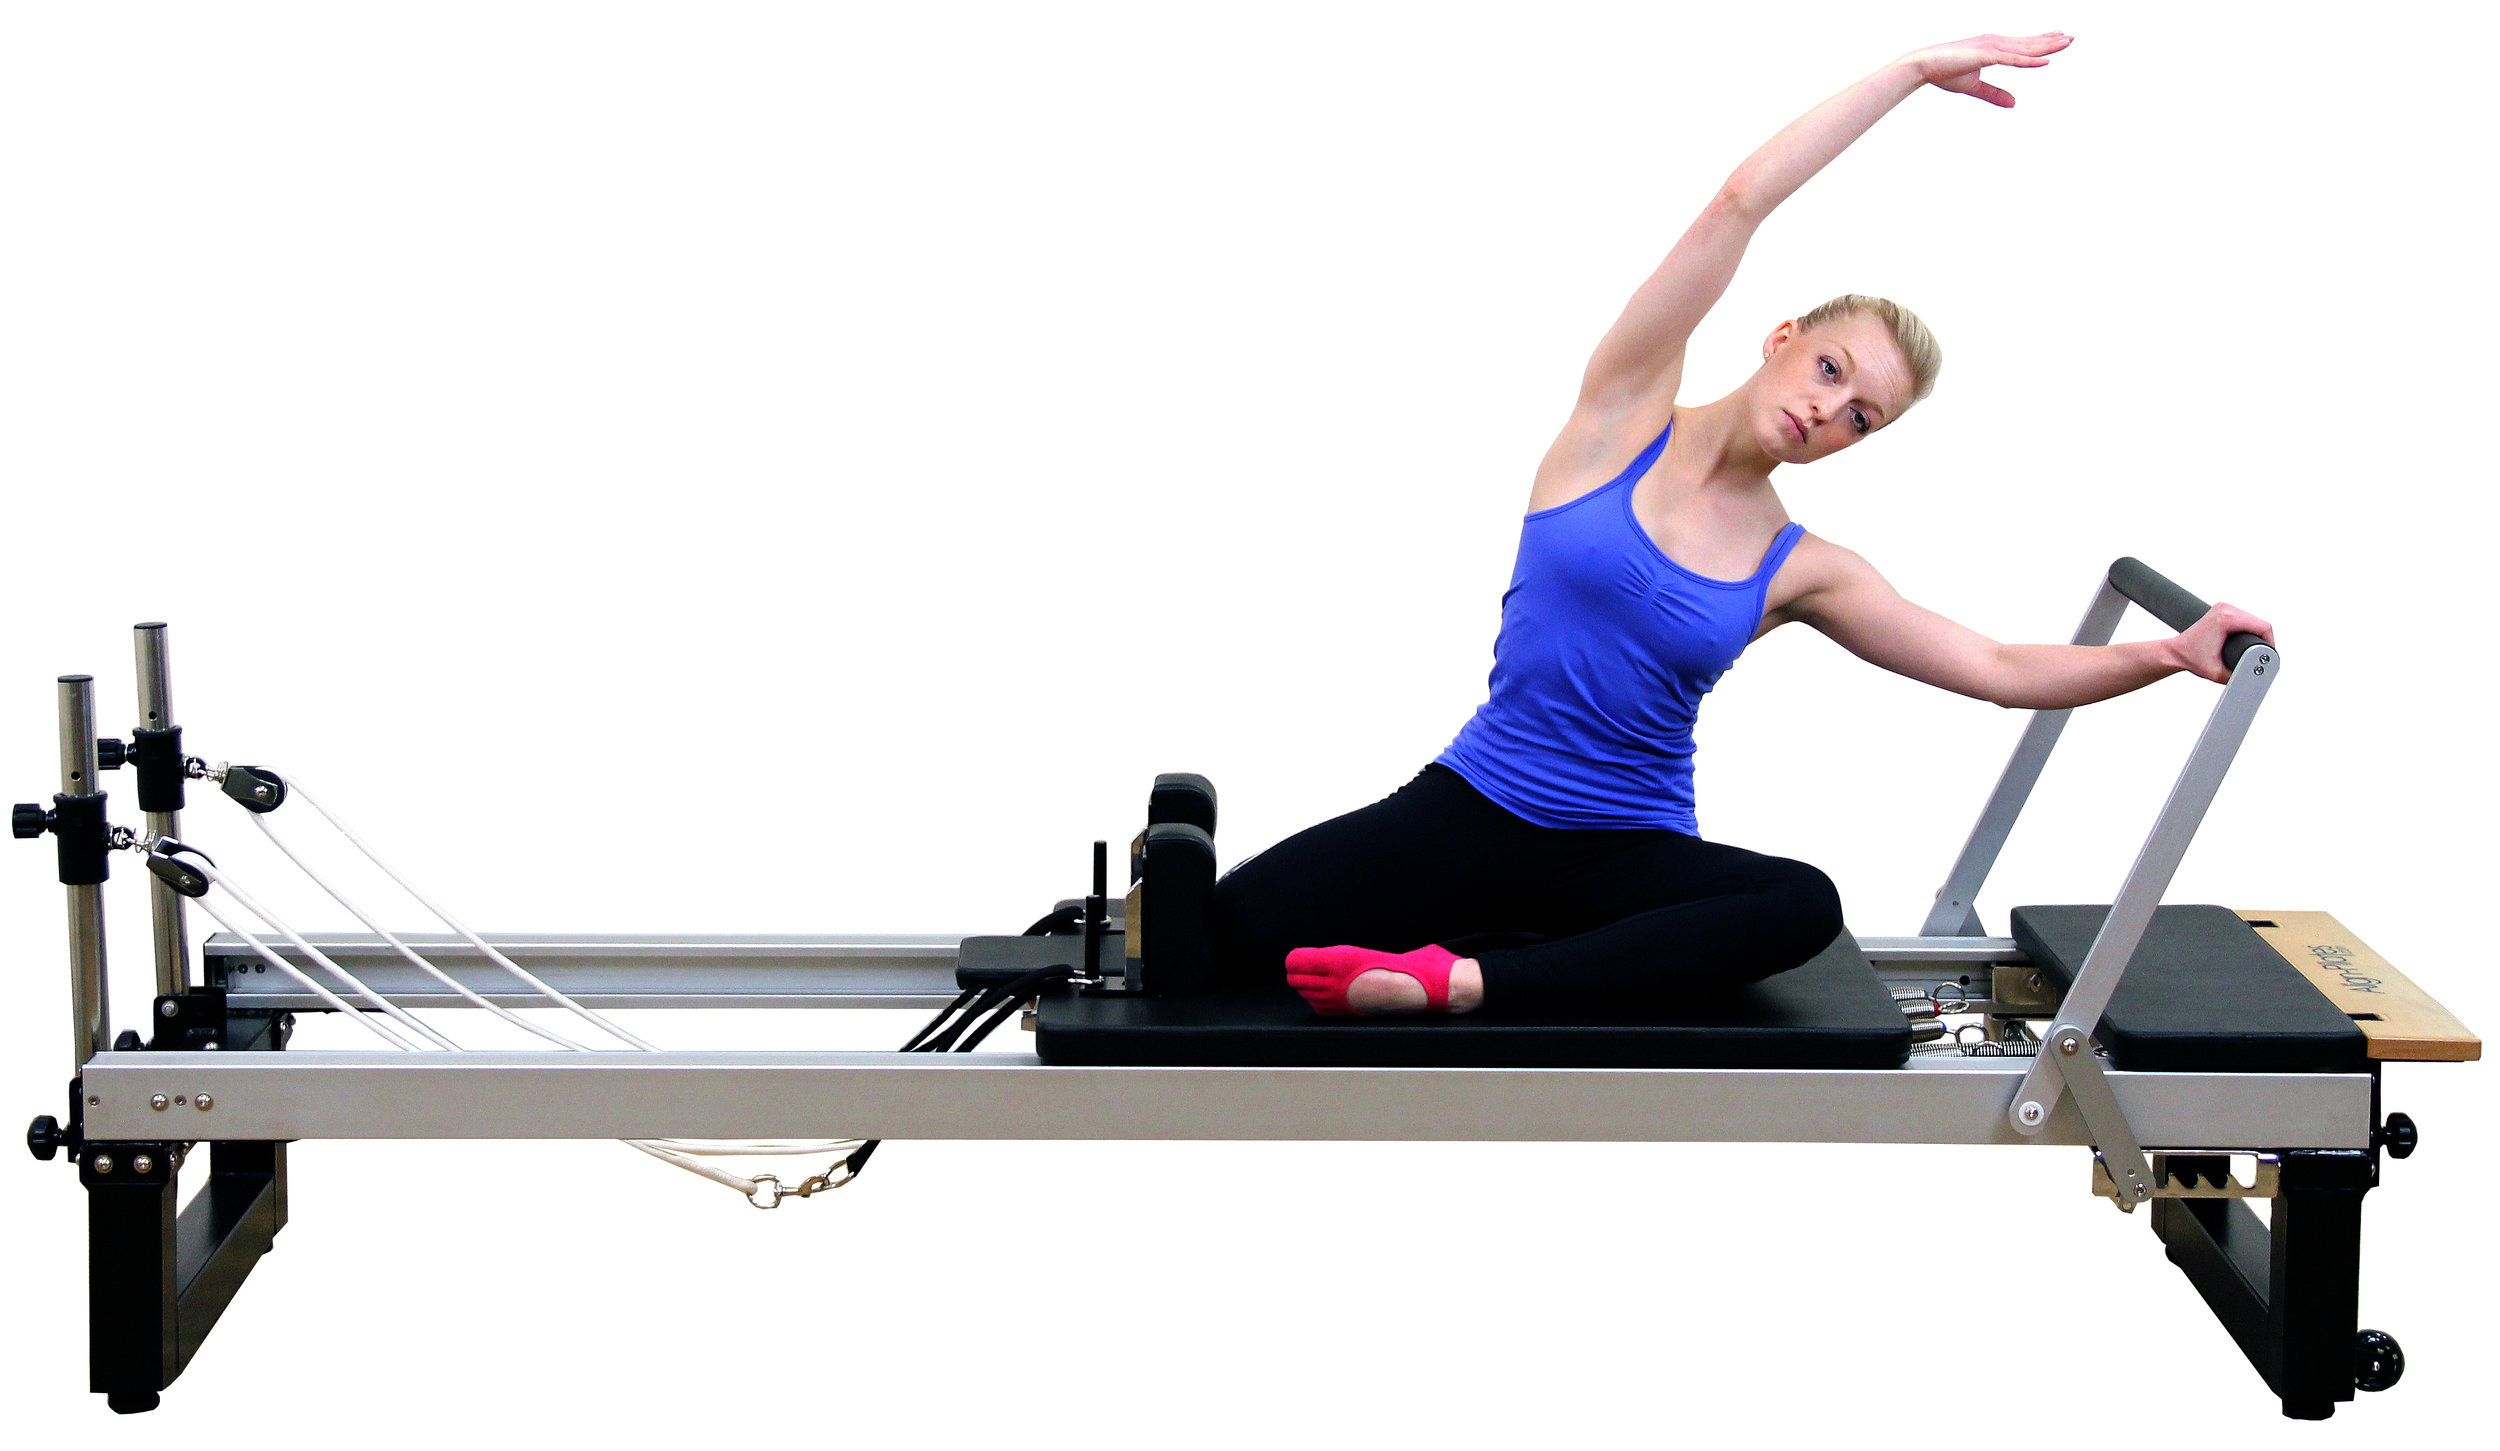 Align A2R2 studio pilates reformer with extension legs and platform extension